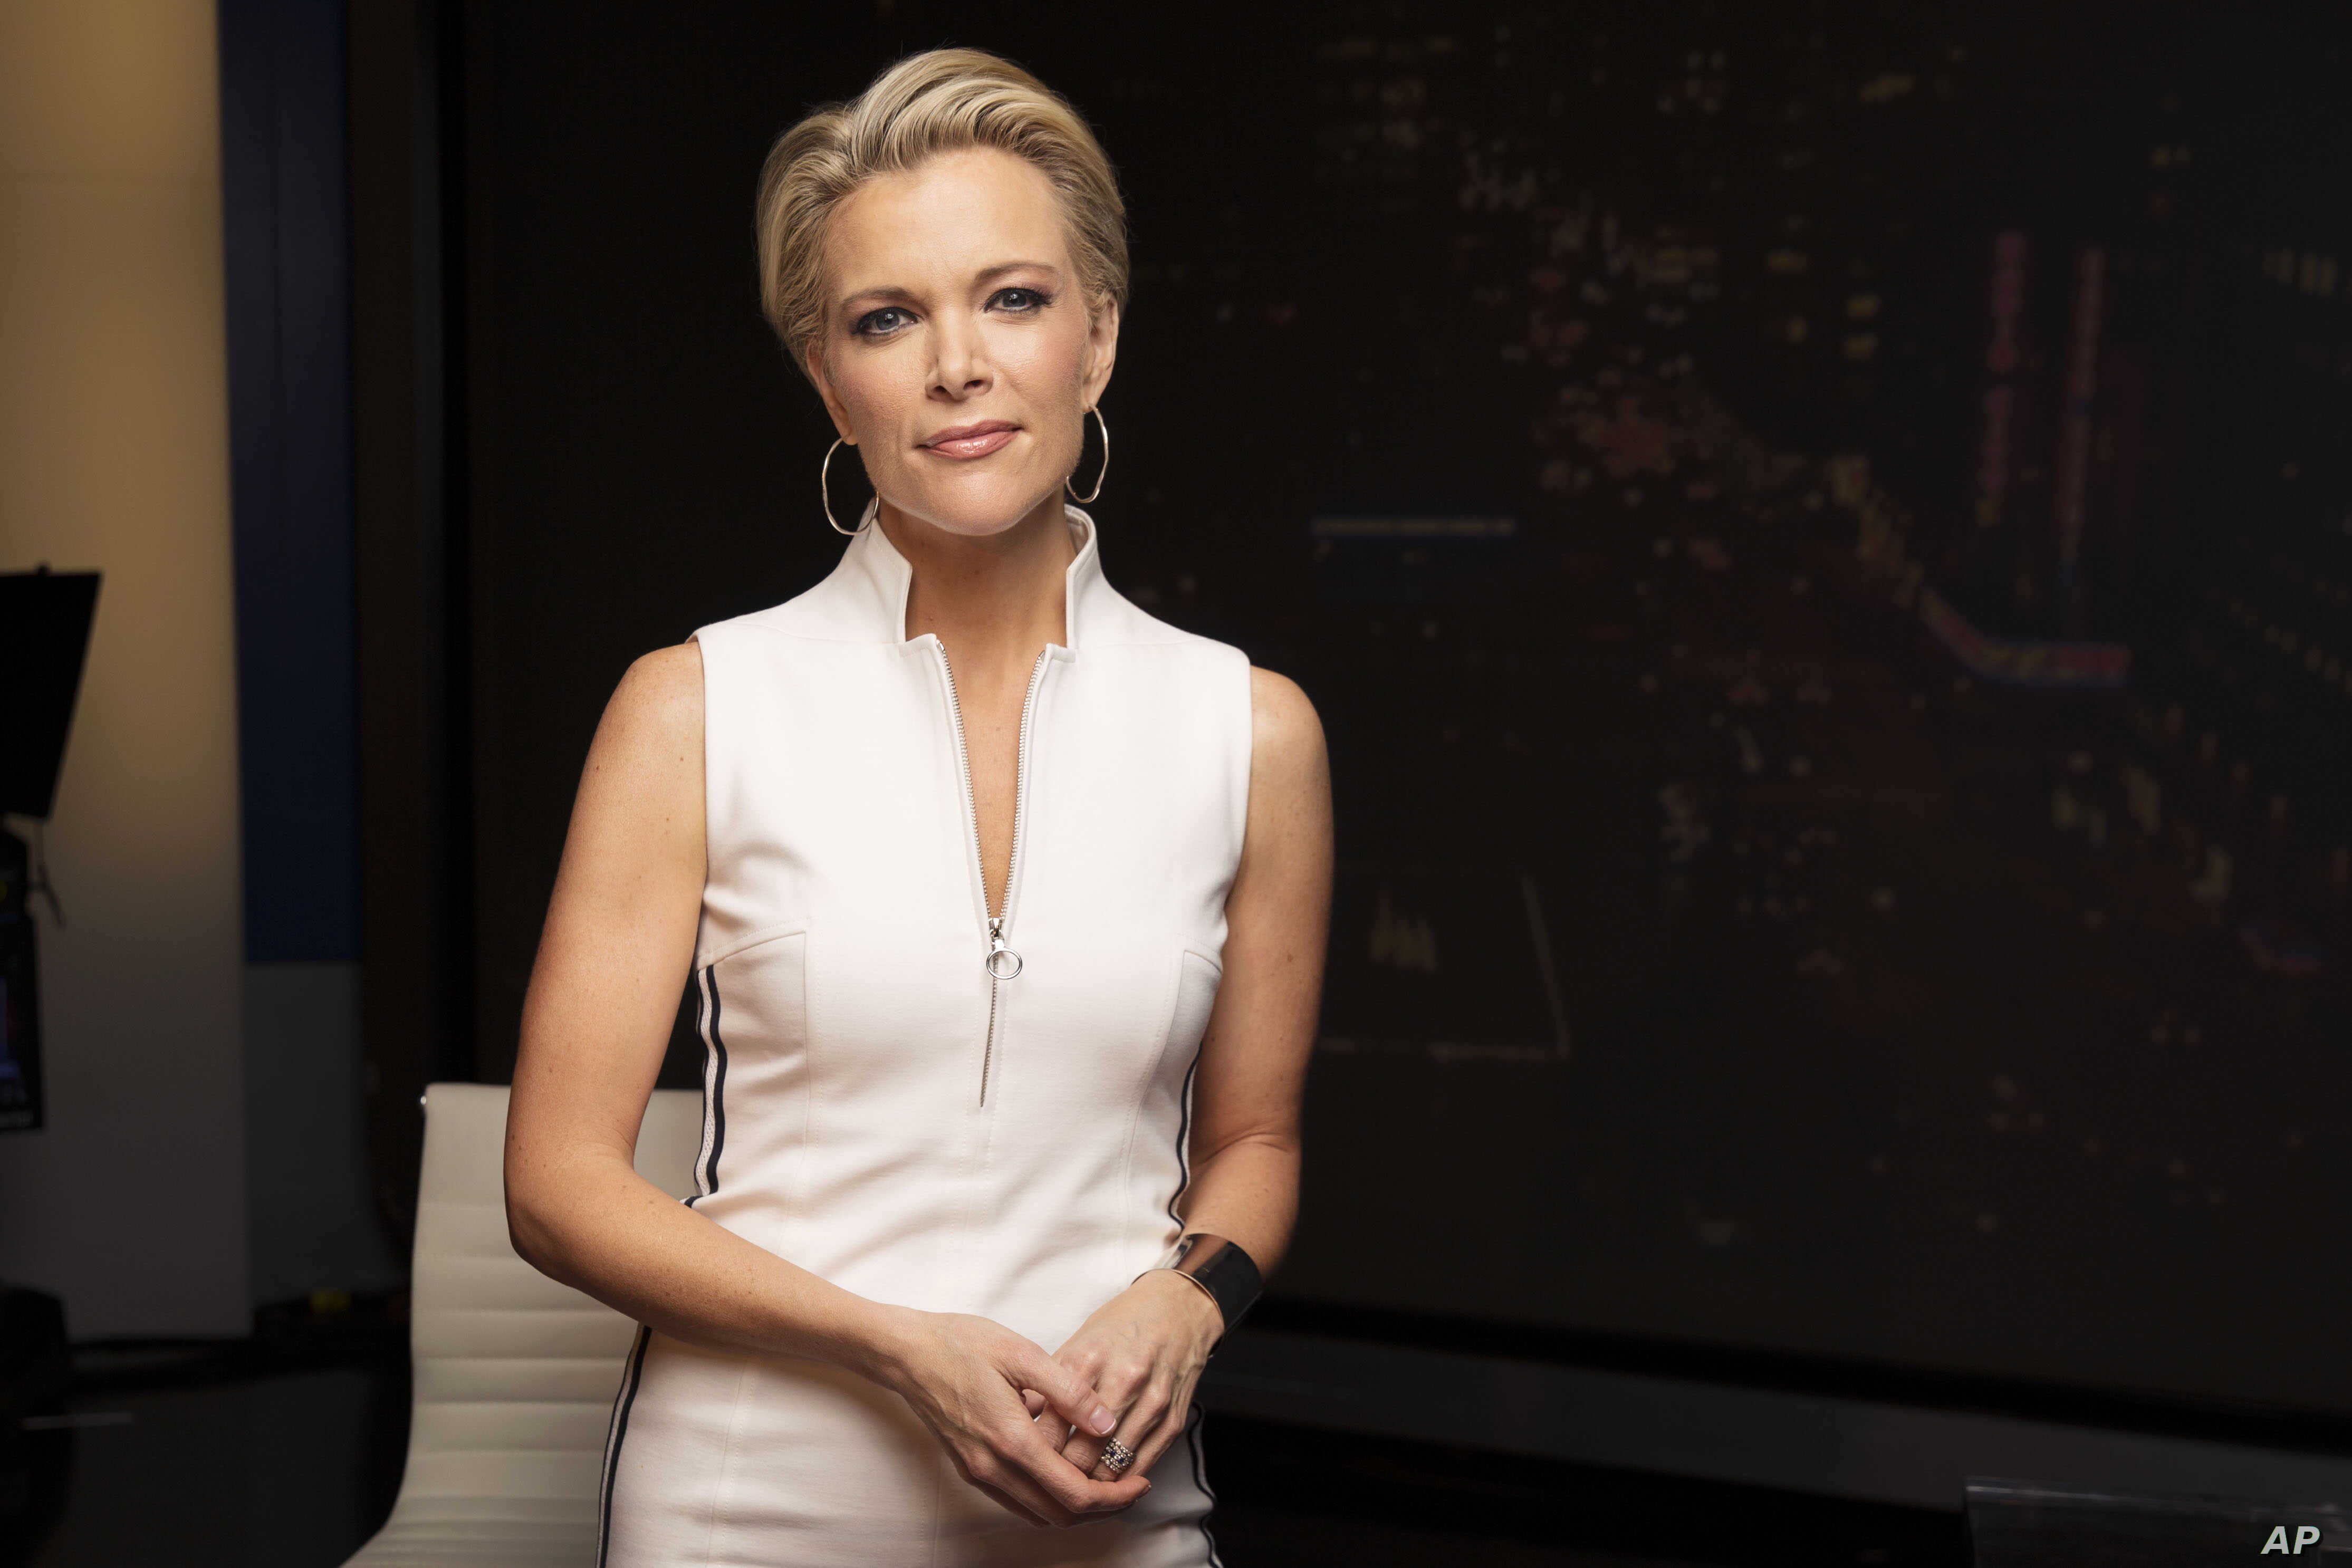 Megyn Kelly poses for a portrait in New York, May 5, 2016.